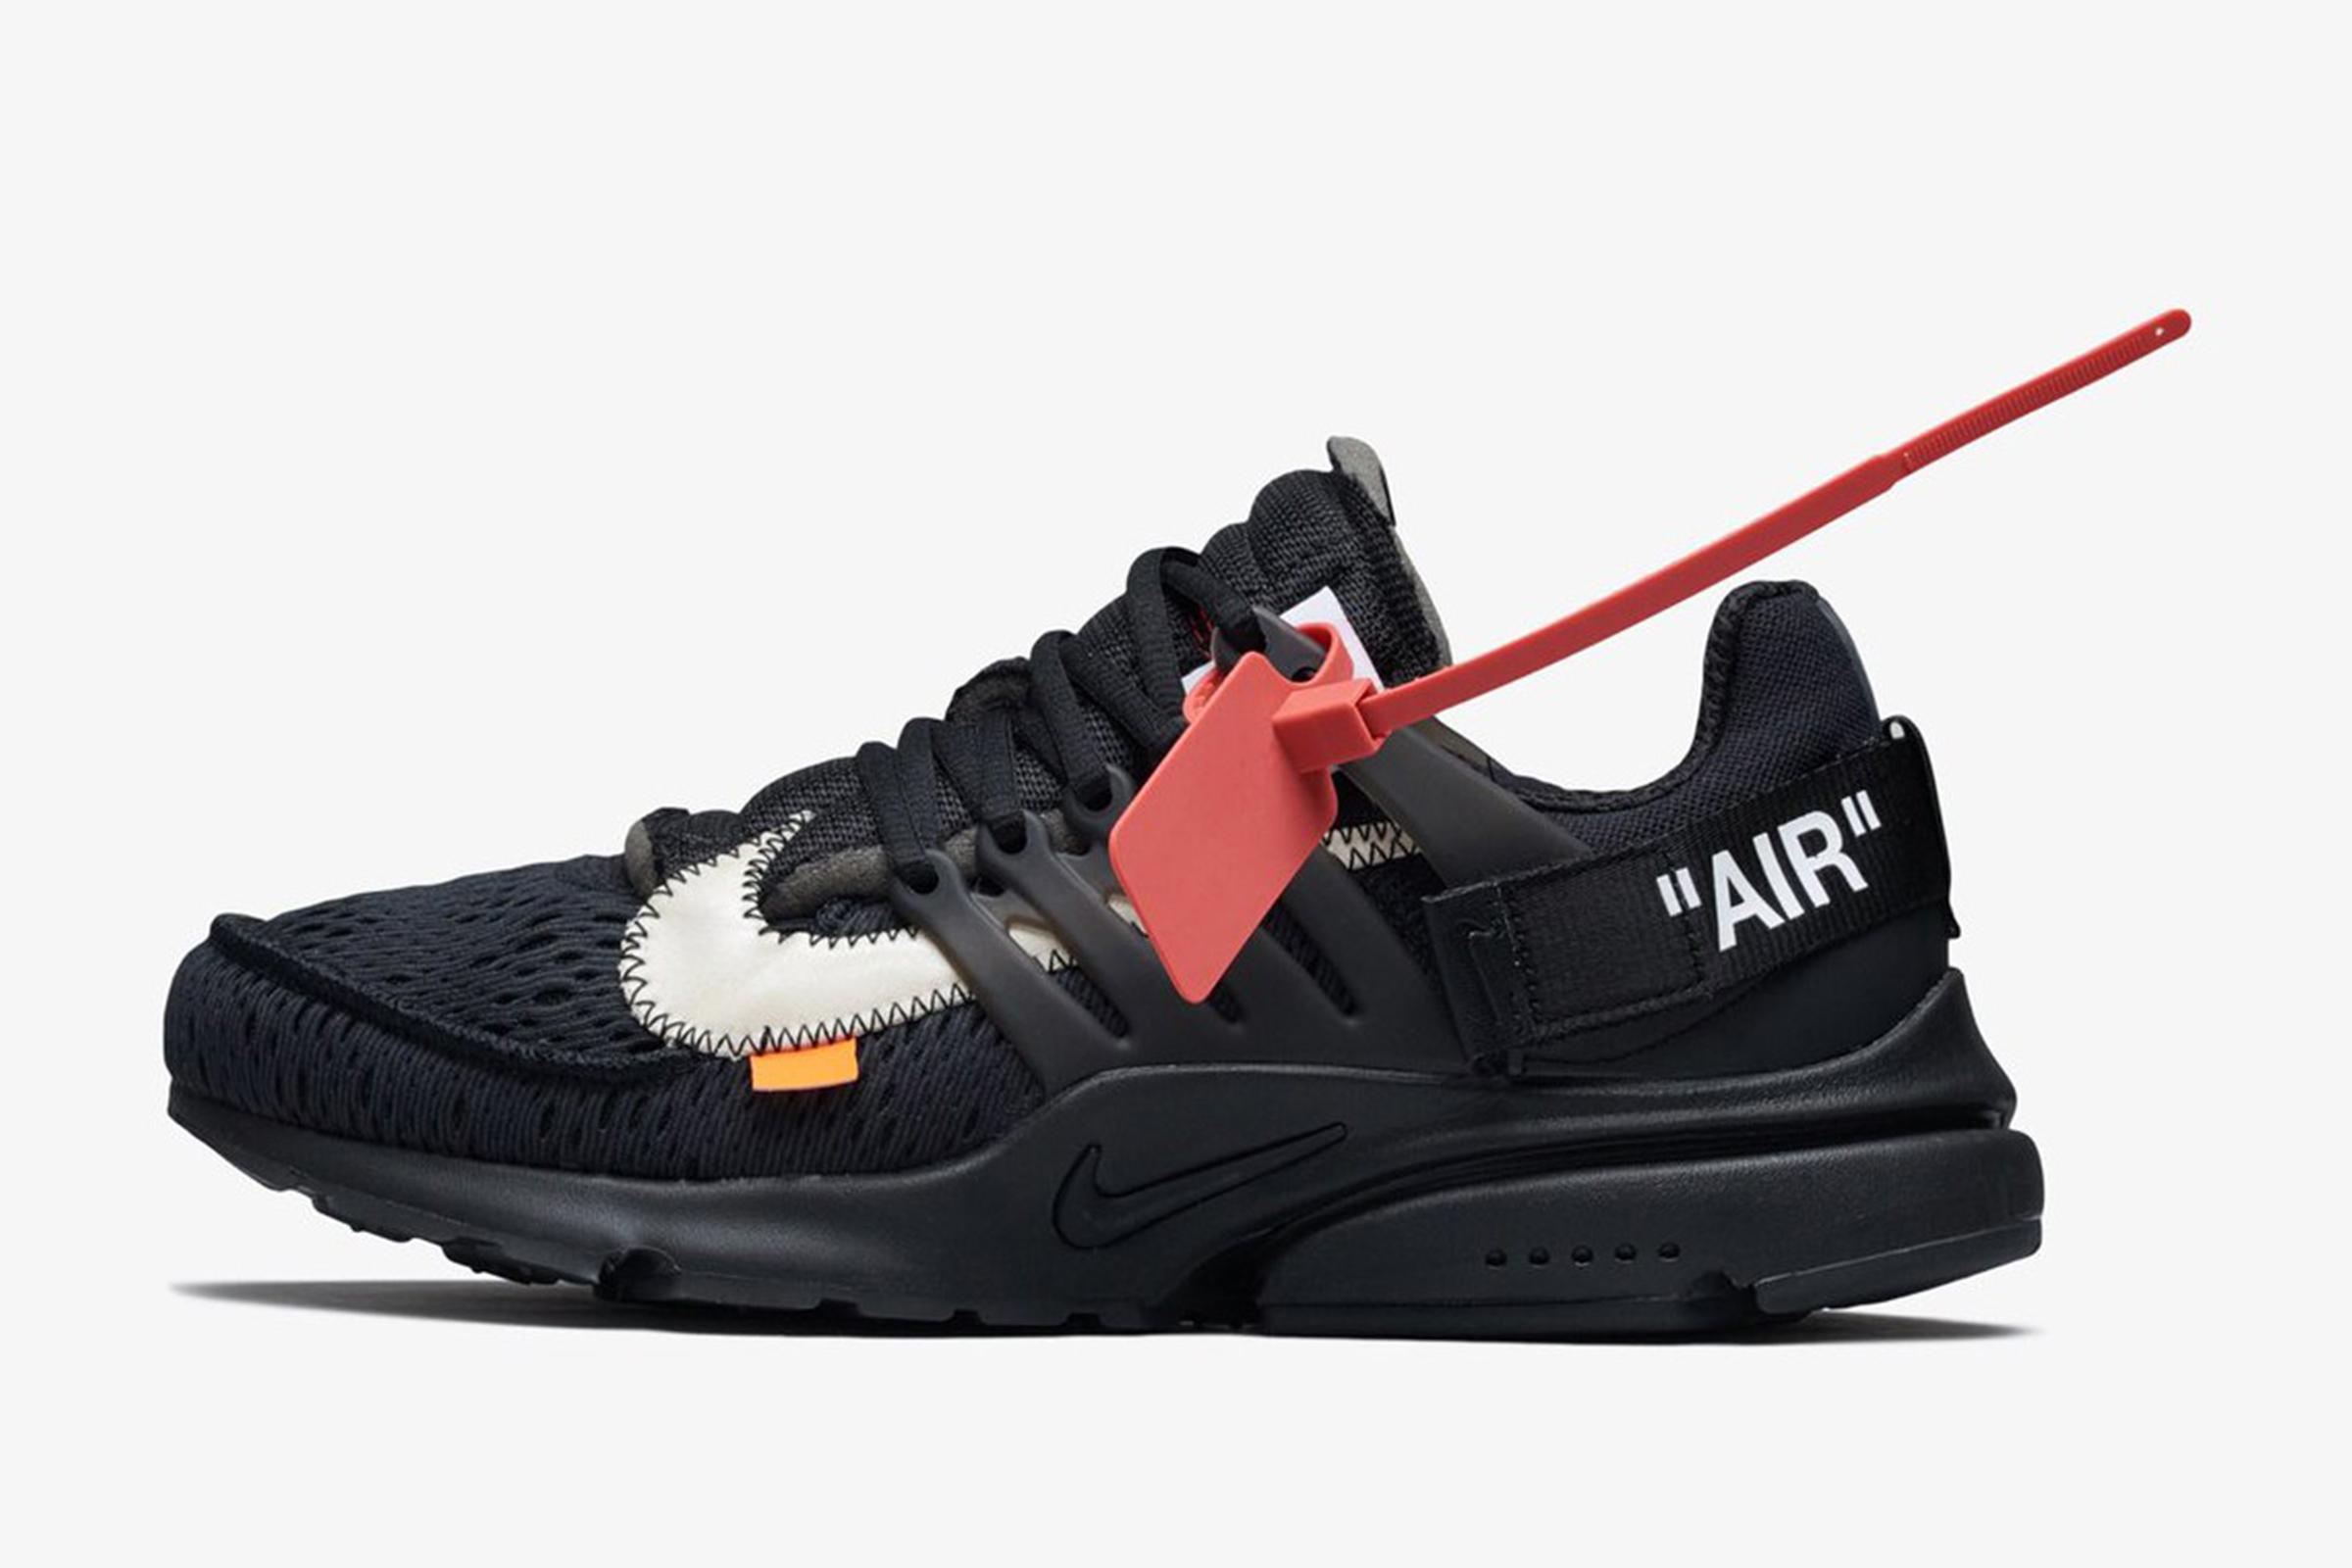 outlet store 598f6 3cbca The Second Off-White x Nike Air Presto Drops This Friday - Off White Nike  Prestos Drop - Heroine